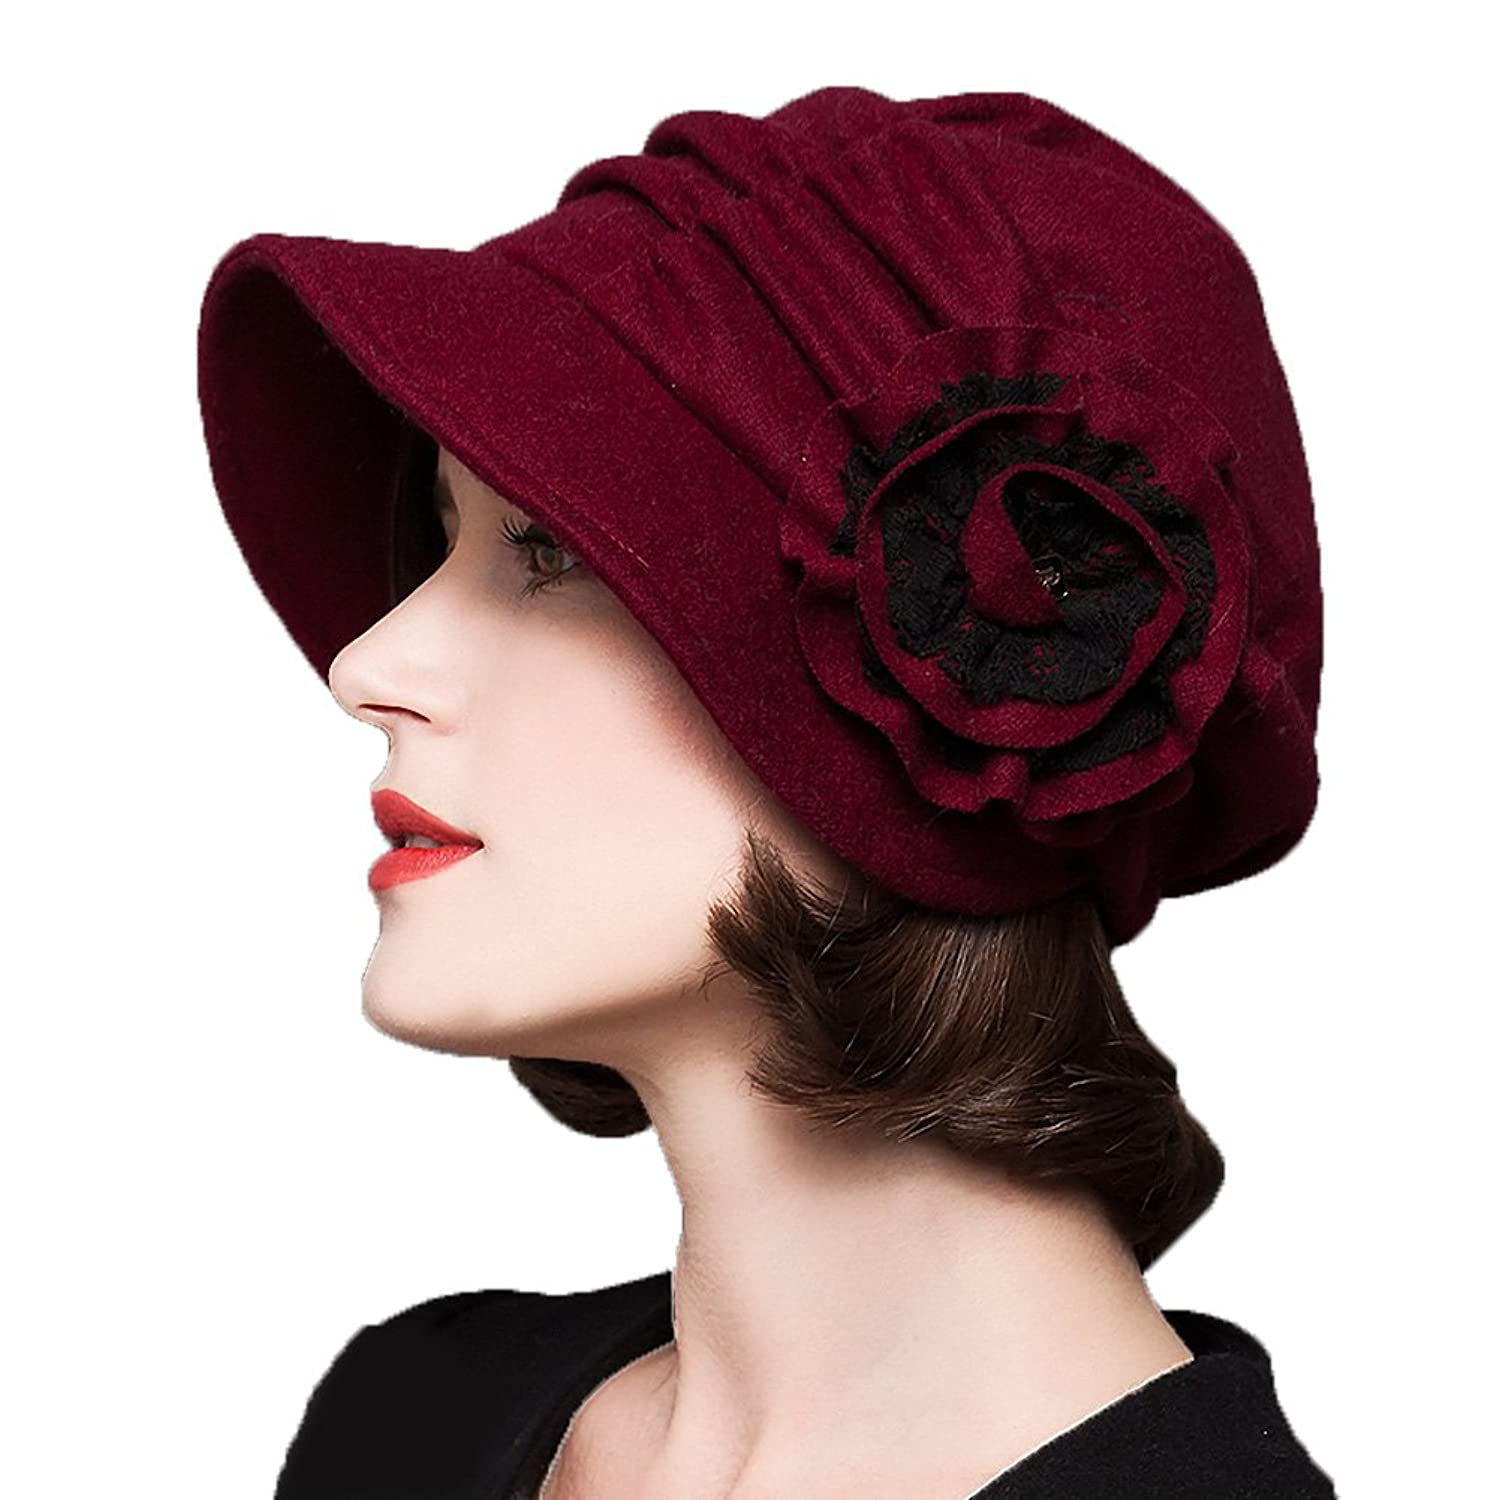 Flapper Costumes, Flapper Girl Costume Decorative Flowers Wool Beret Maitose Trade Womens Decorative Flowers Wool Beret $28.40 AT vintagedancer.com